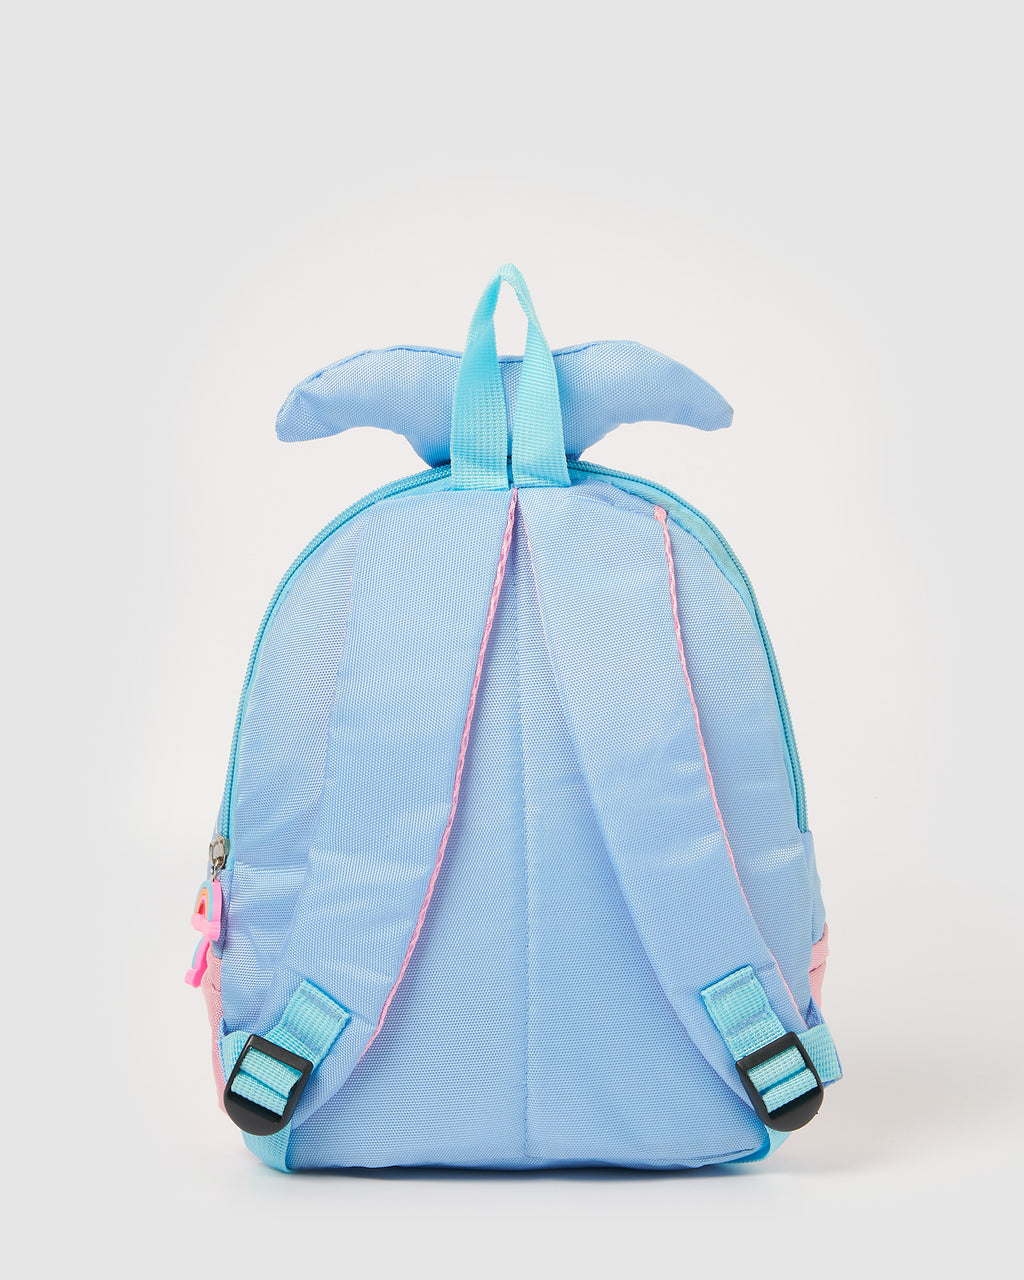 Izoa Kids Mermaid Backpack Blue